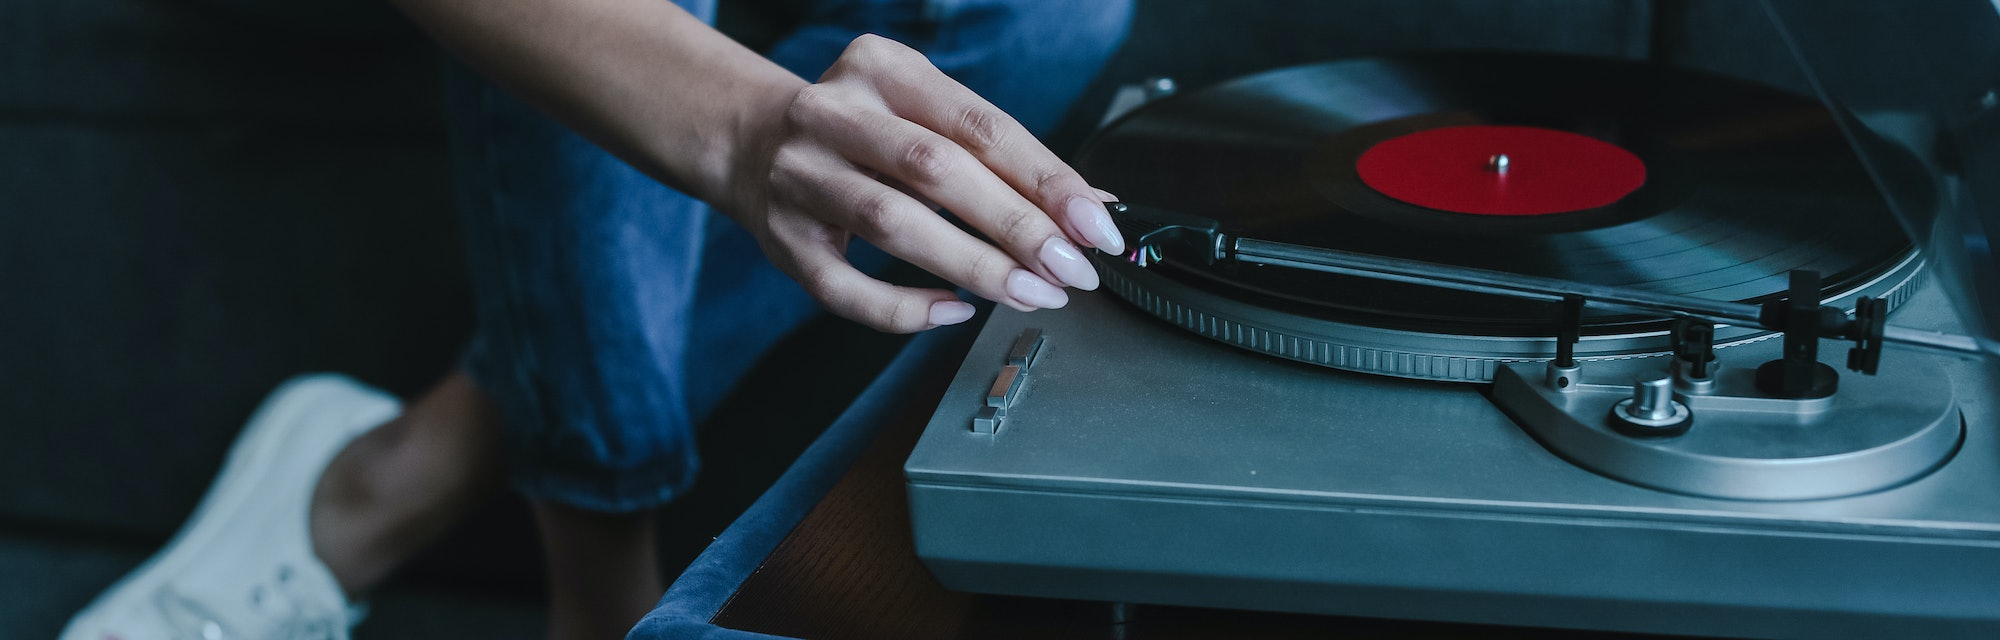 cropped image of mixed race girl turning on gramophone with retro vinyl at home